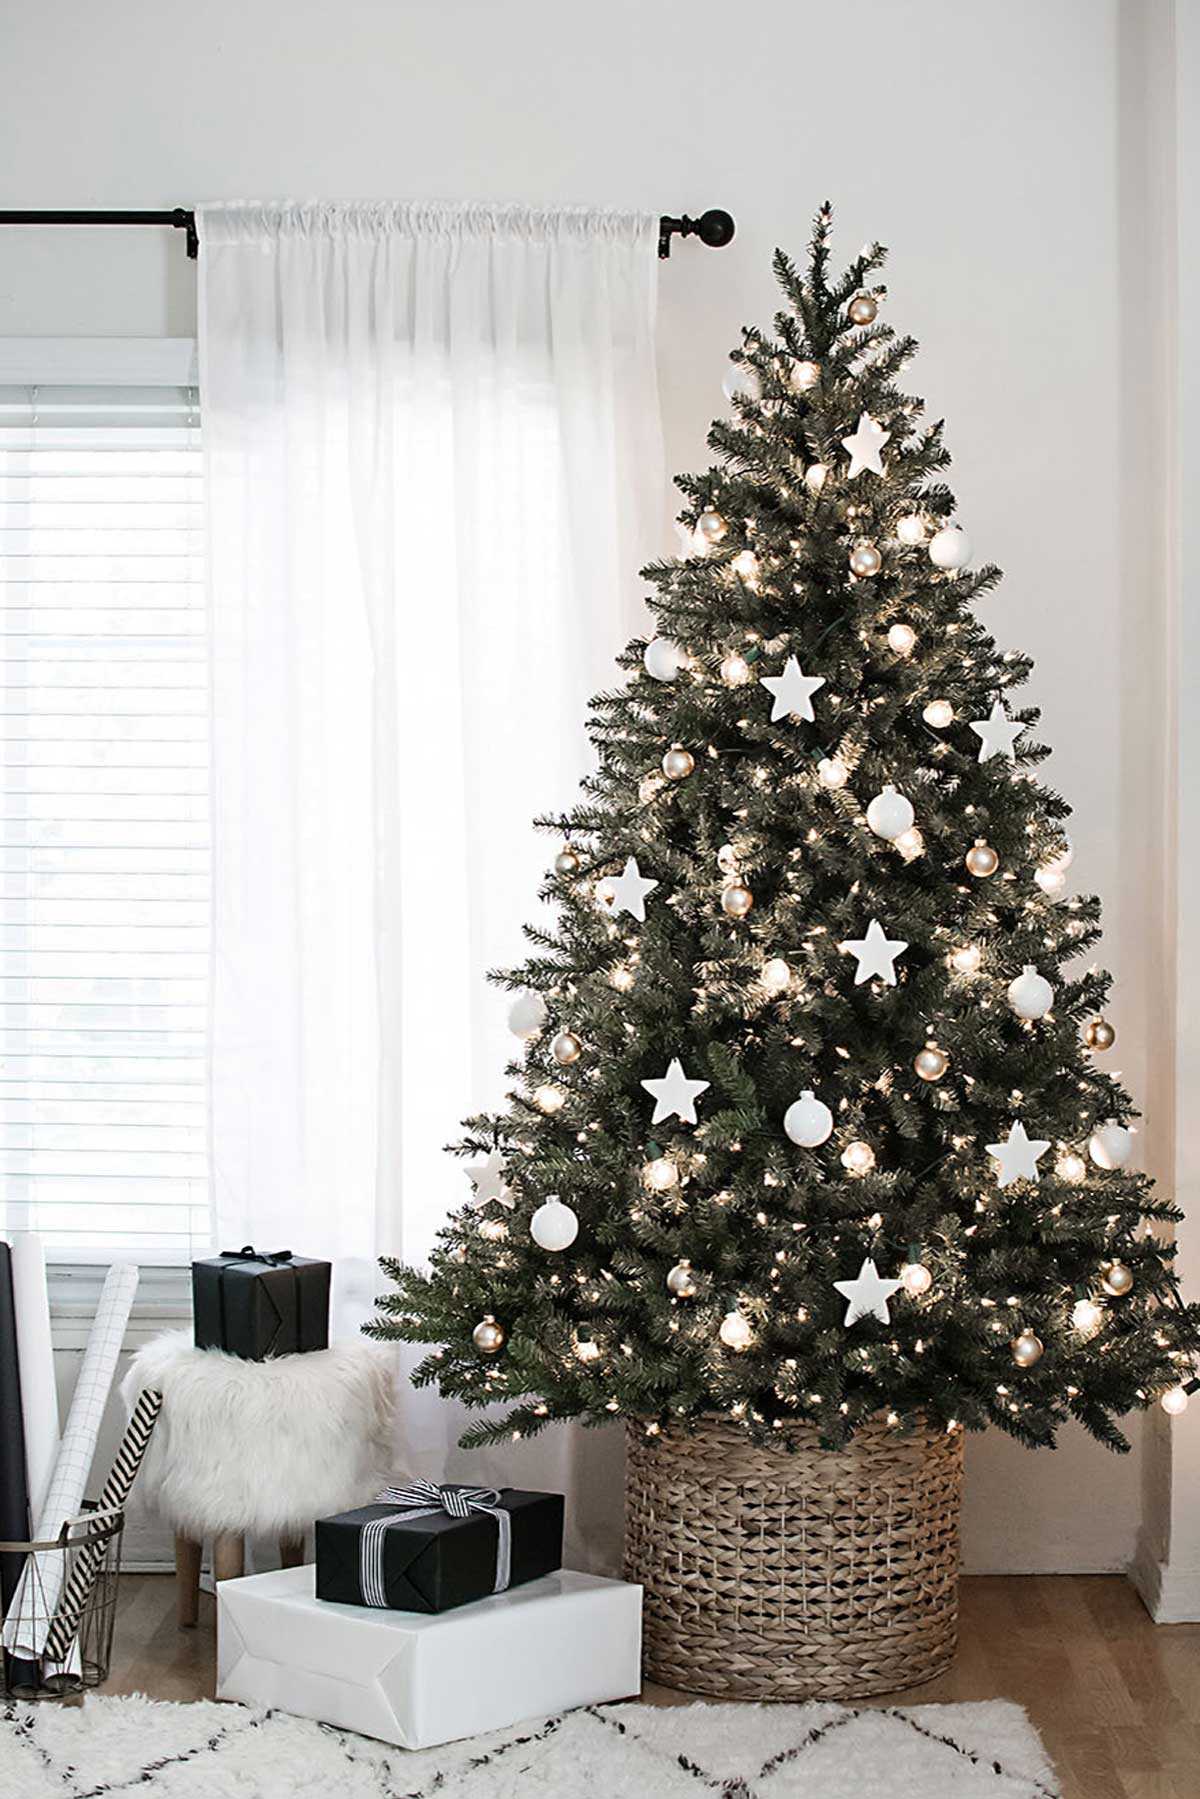 Christmas tree decorating - Steps to creating a majestic Christmas ...